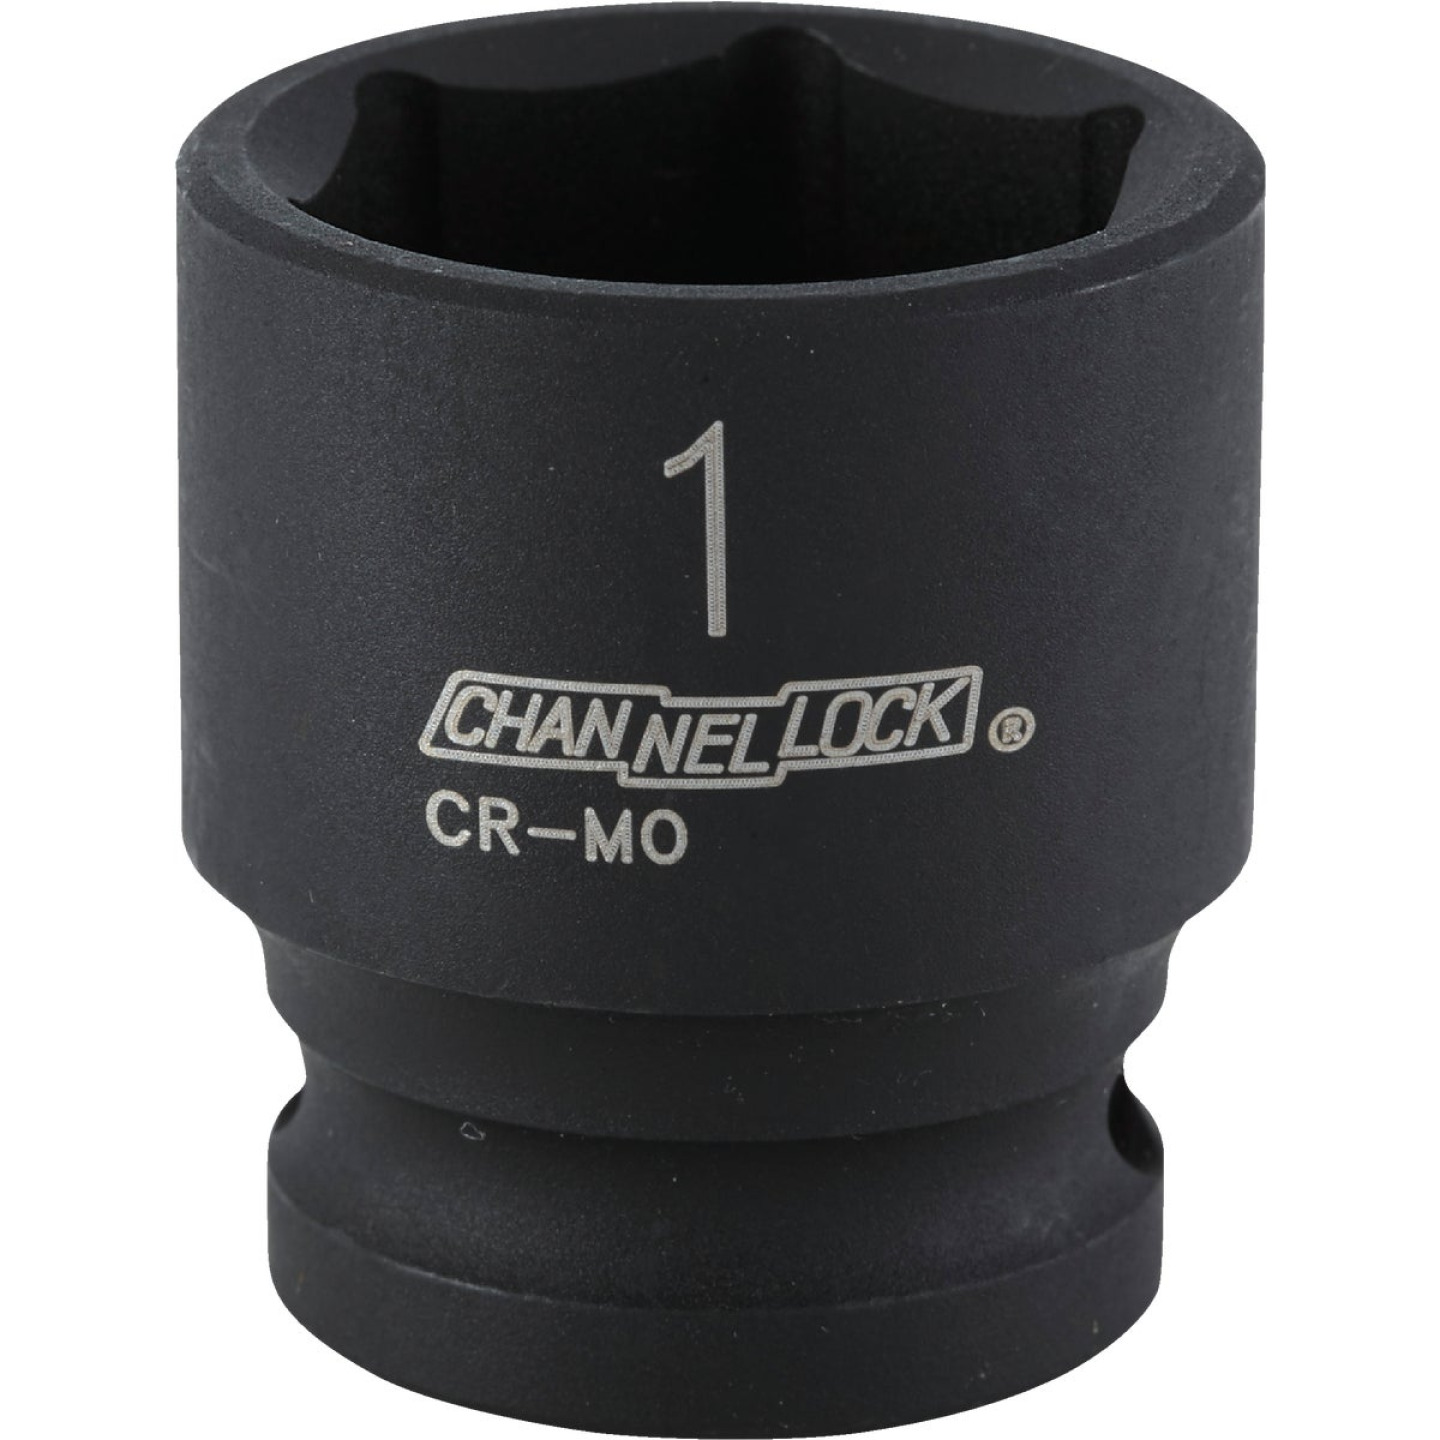 Channellock 1/2 In. Drive 1 In. 6-Point Shallow Standard Impact Socket Image 1